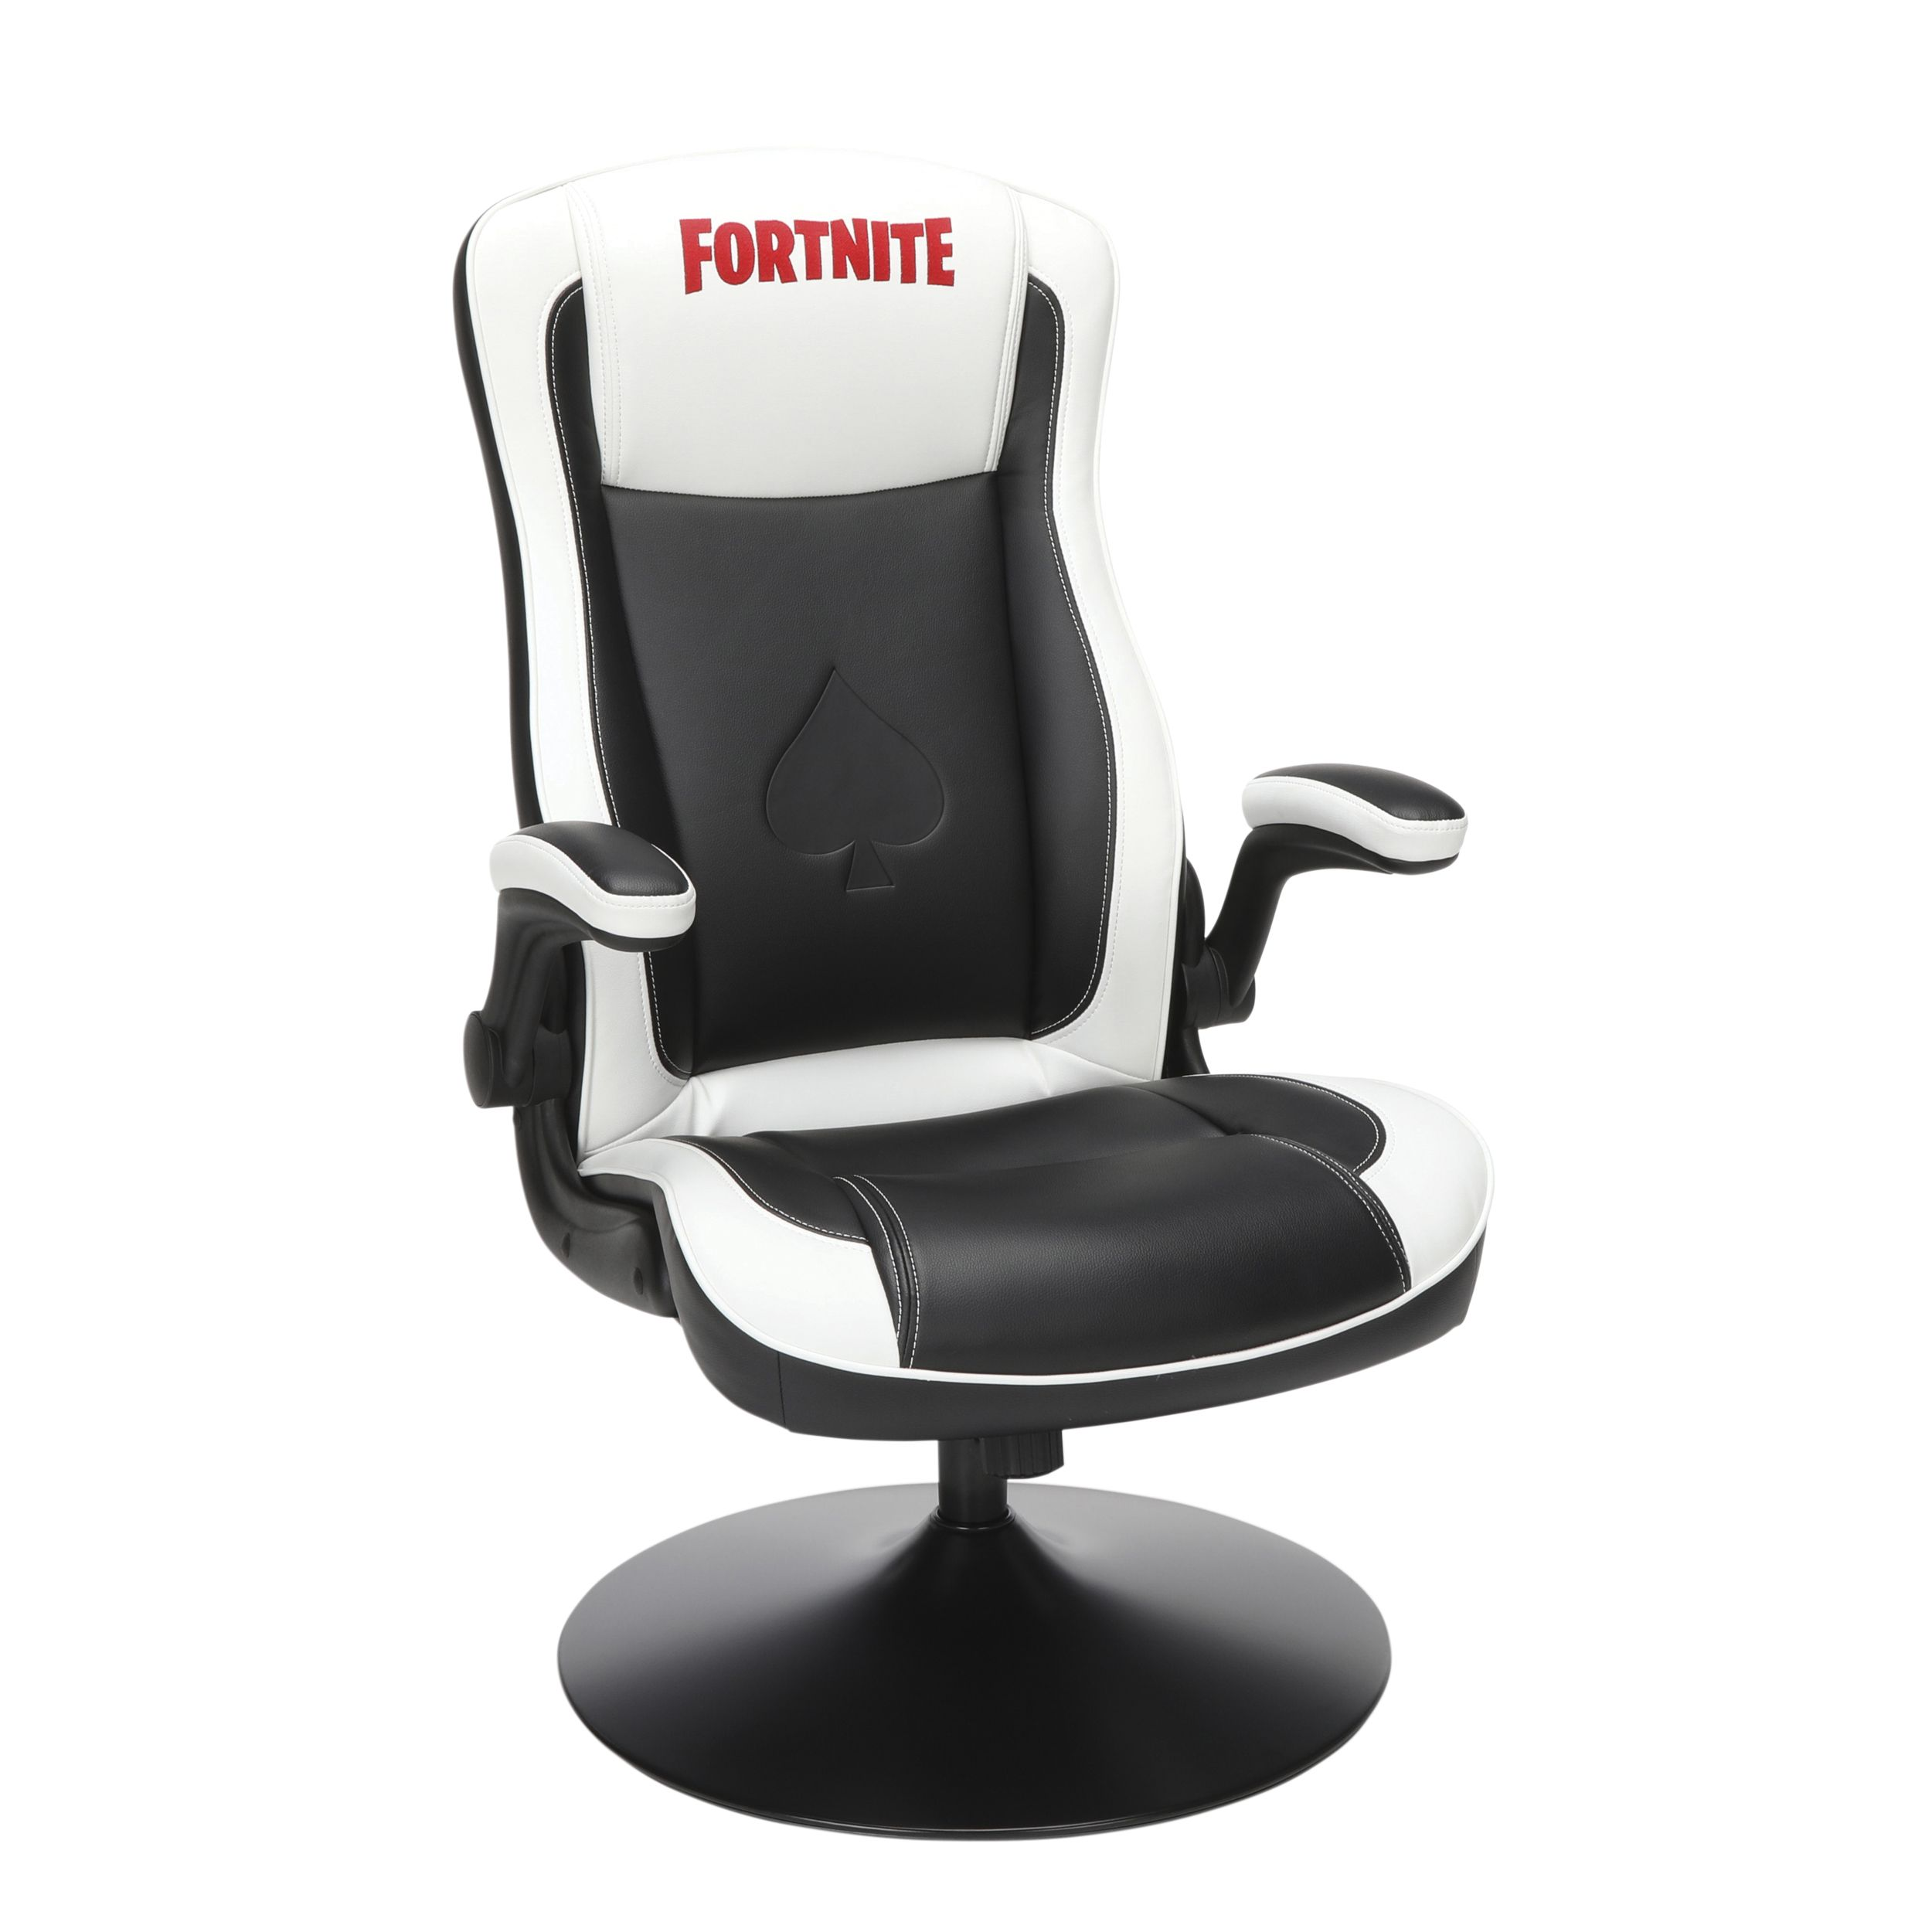 Home Gaming chair, Rocker chairs, Ofm